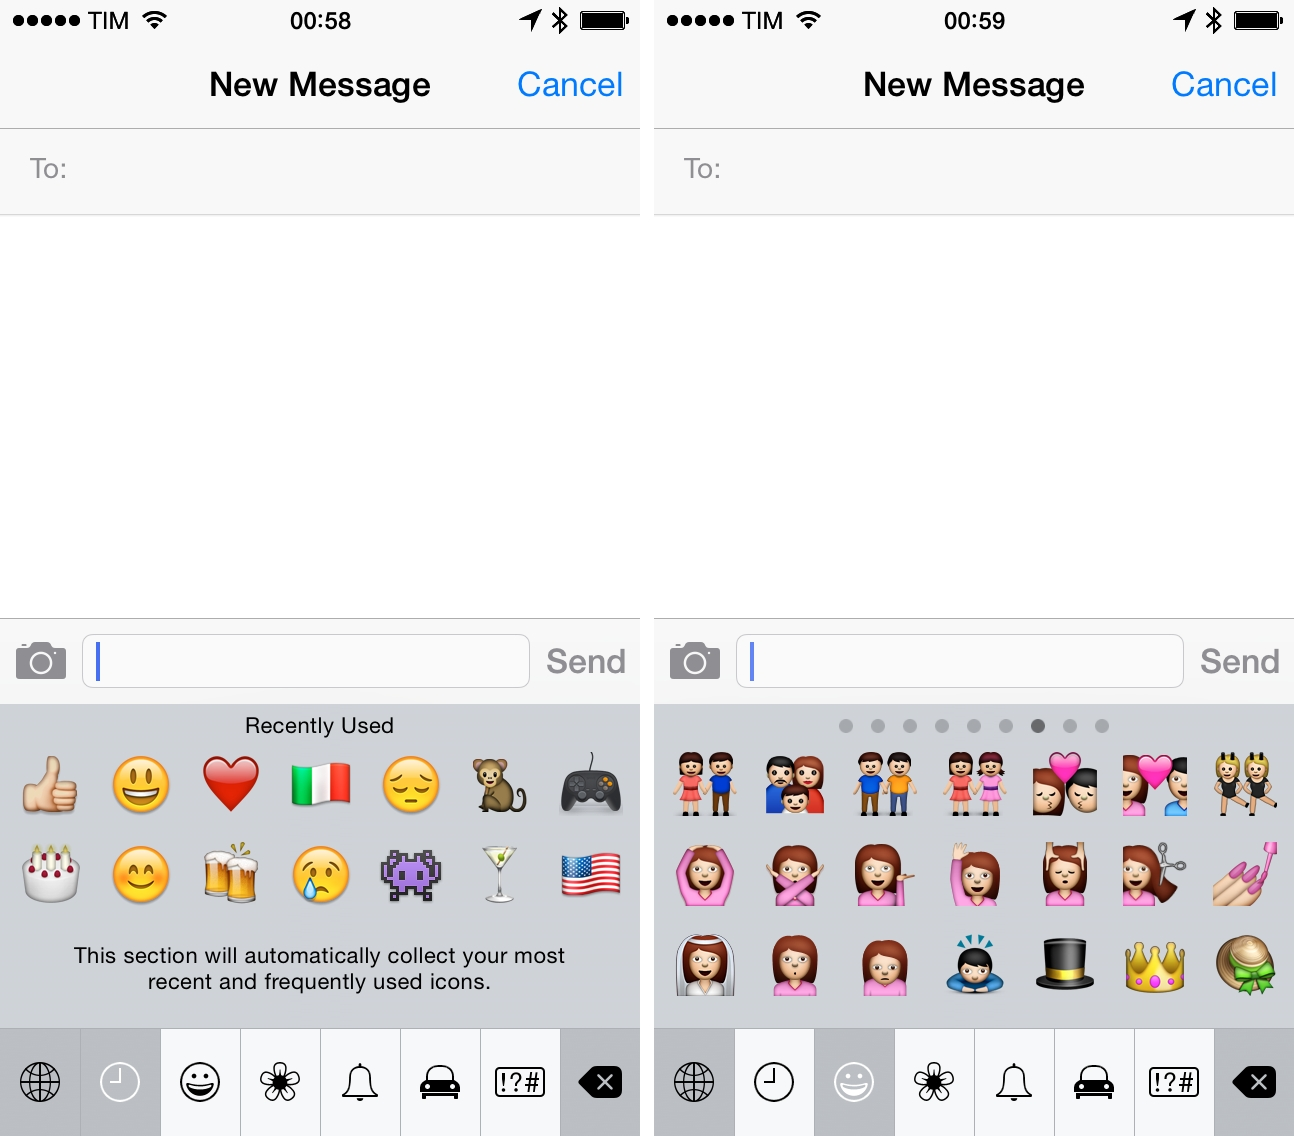 Unicode 7 0 Released, Includes New Emoji - MacStories